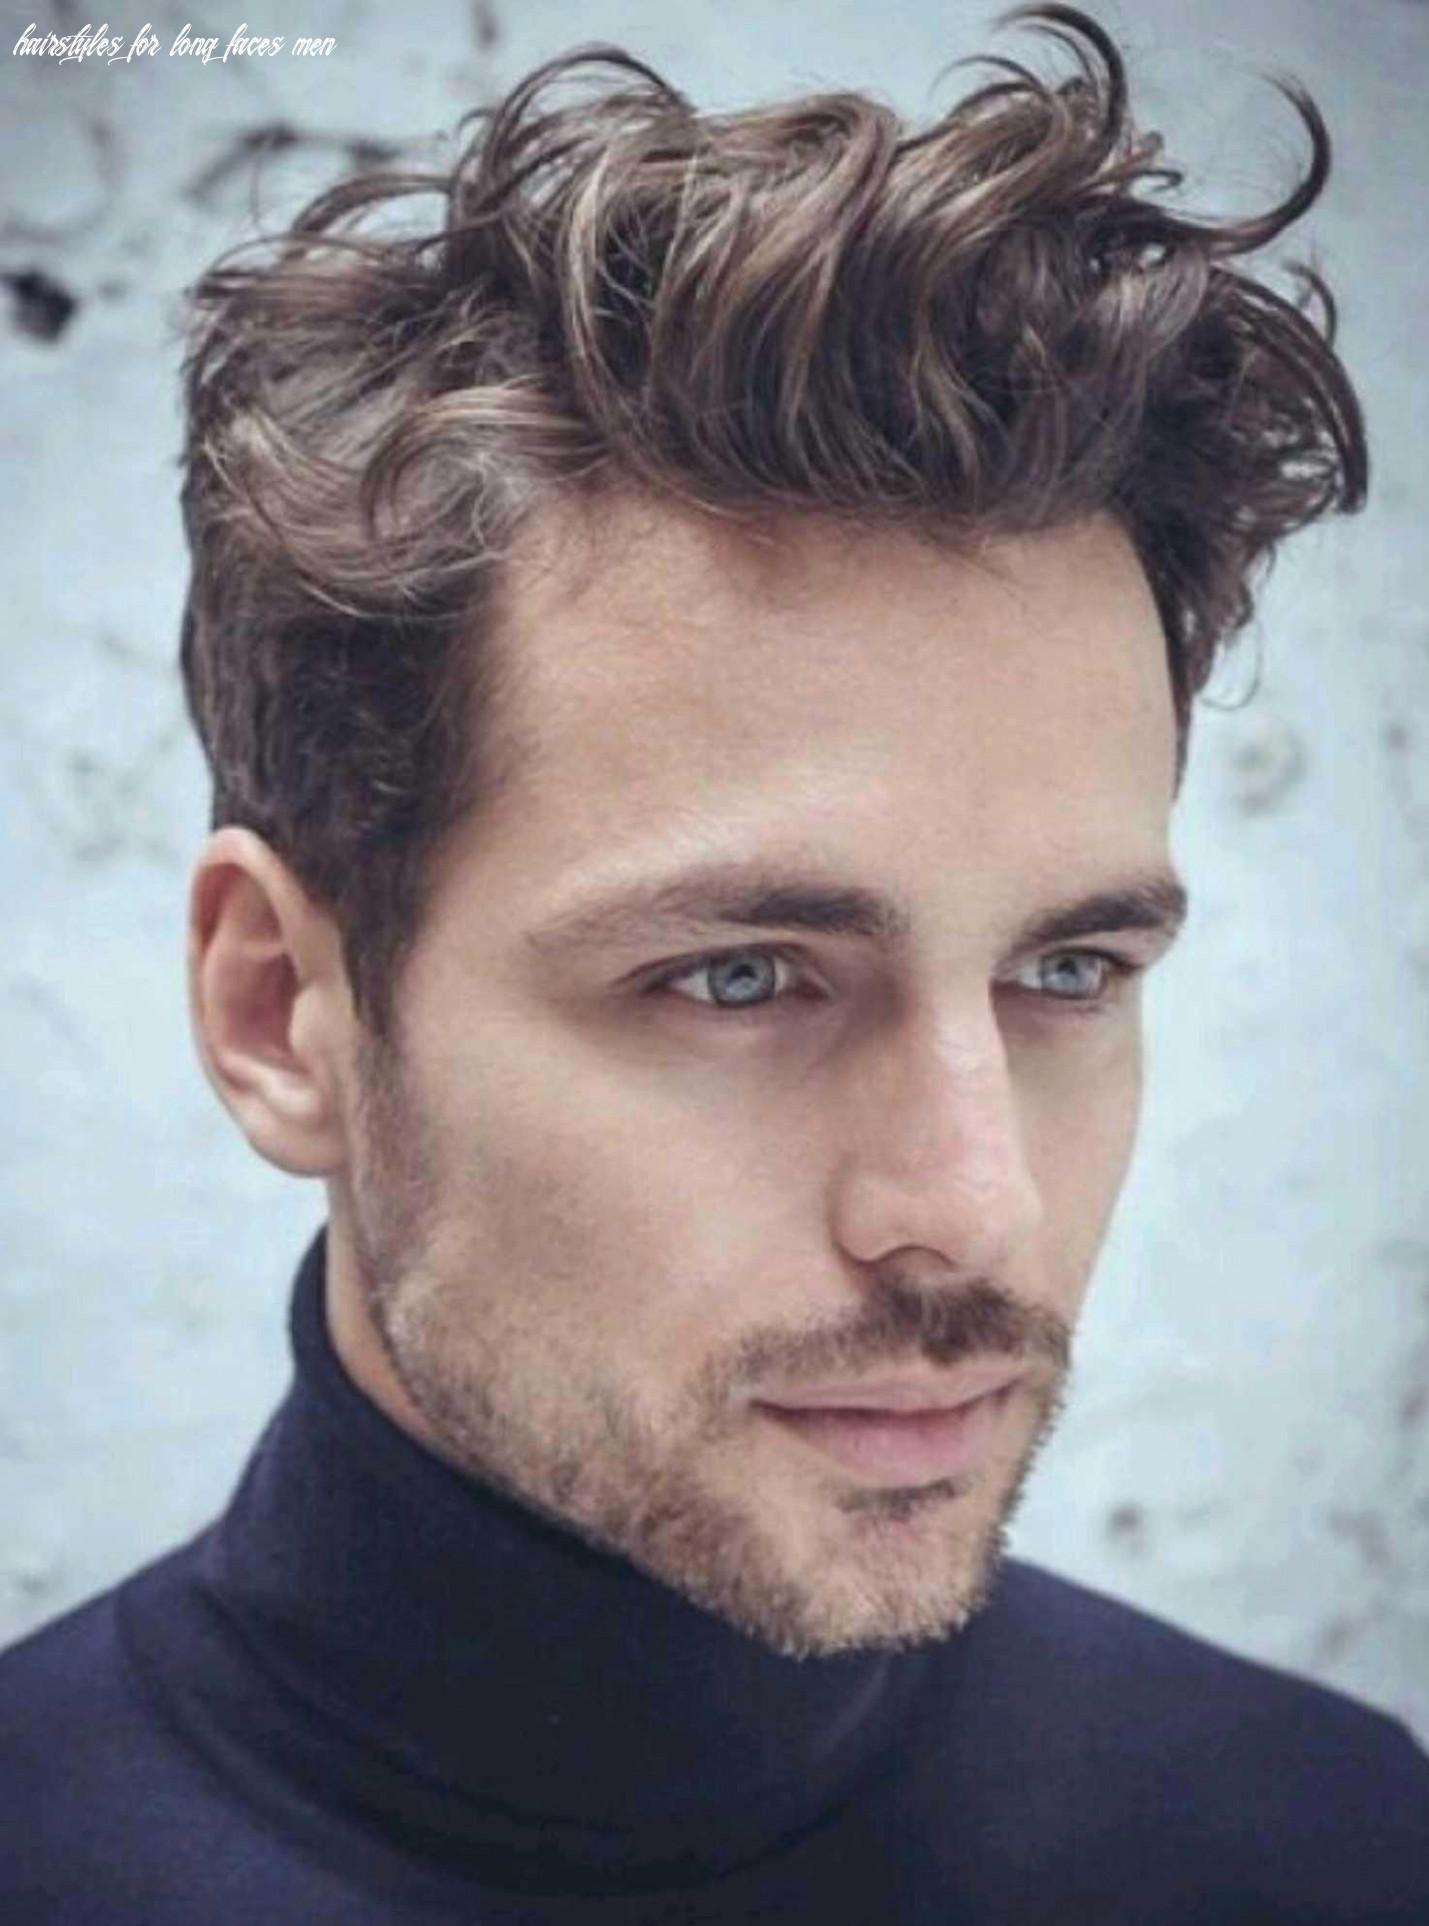 Hairstyle for oblong face man inspirational hairstyles for long